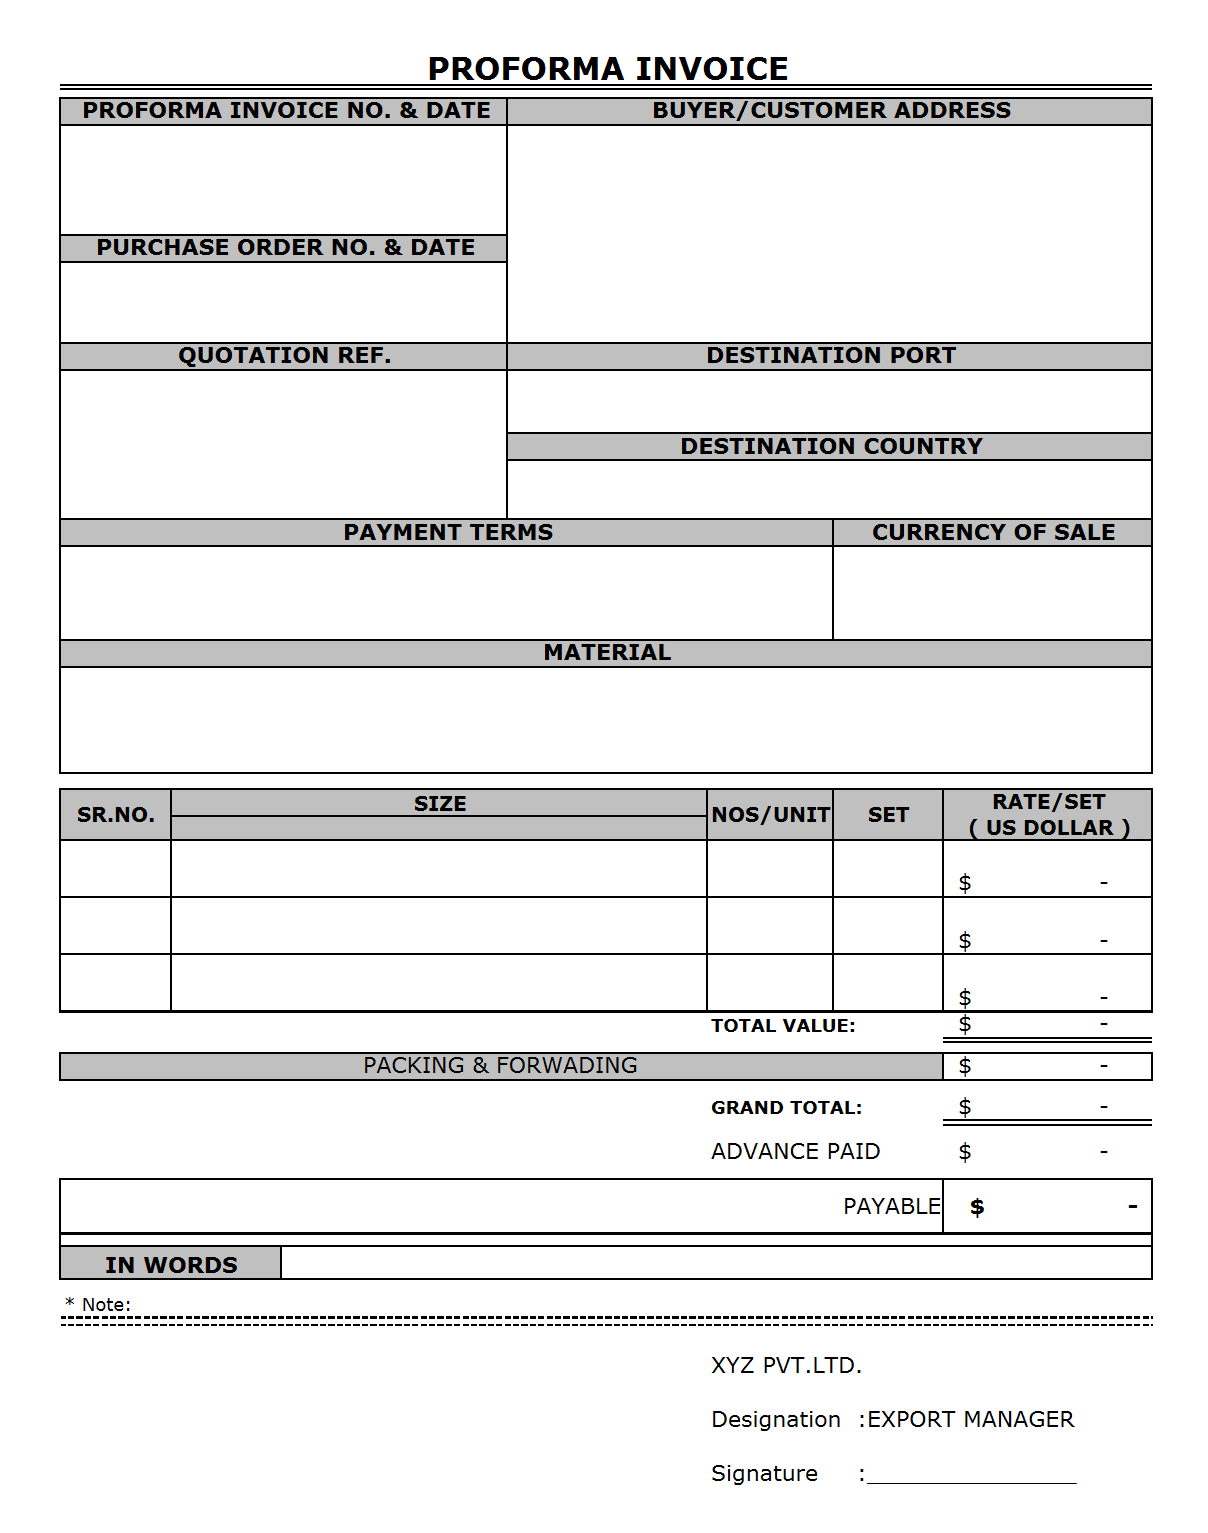 proforma invoice format for export – residers, Invoice templates